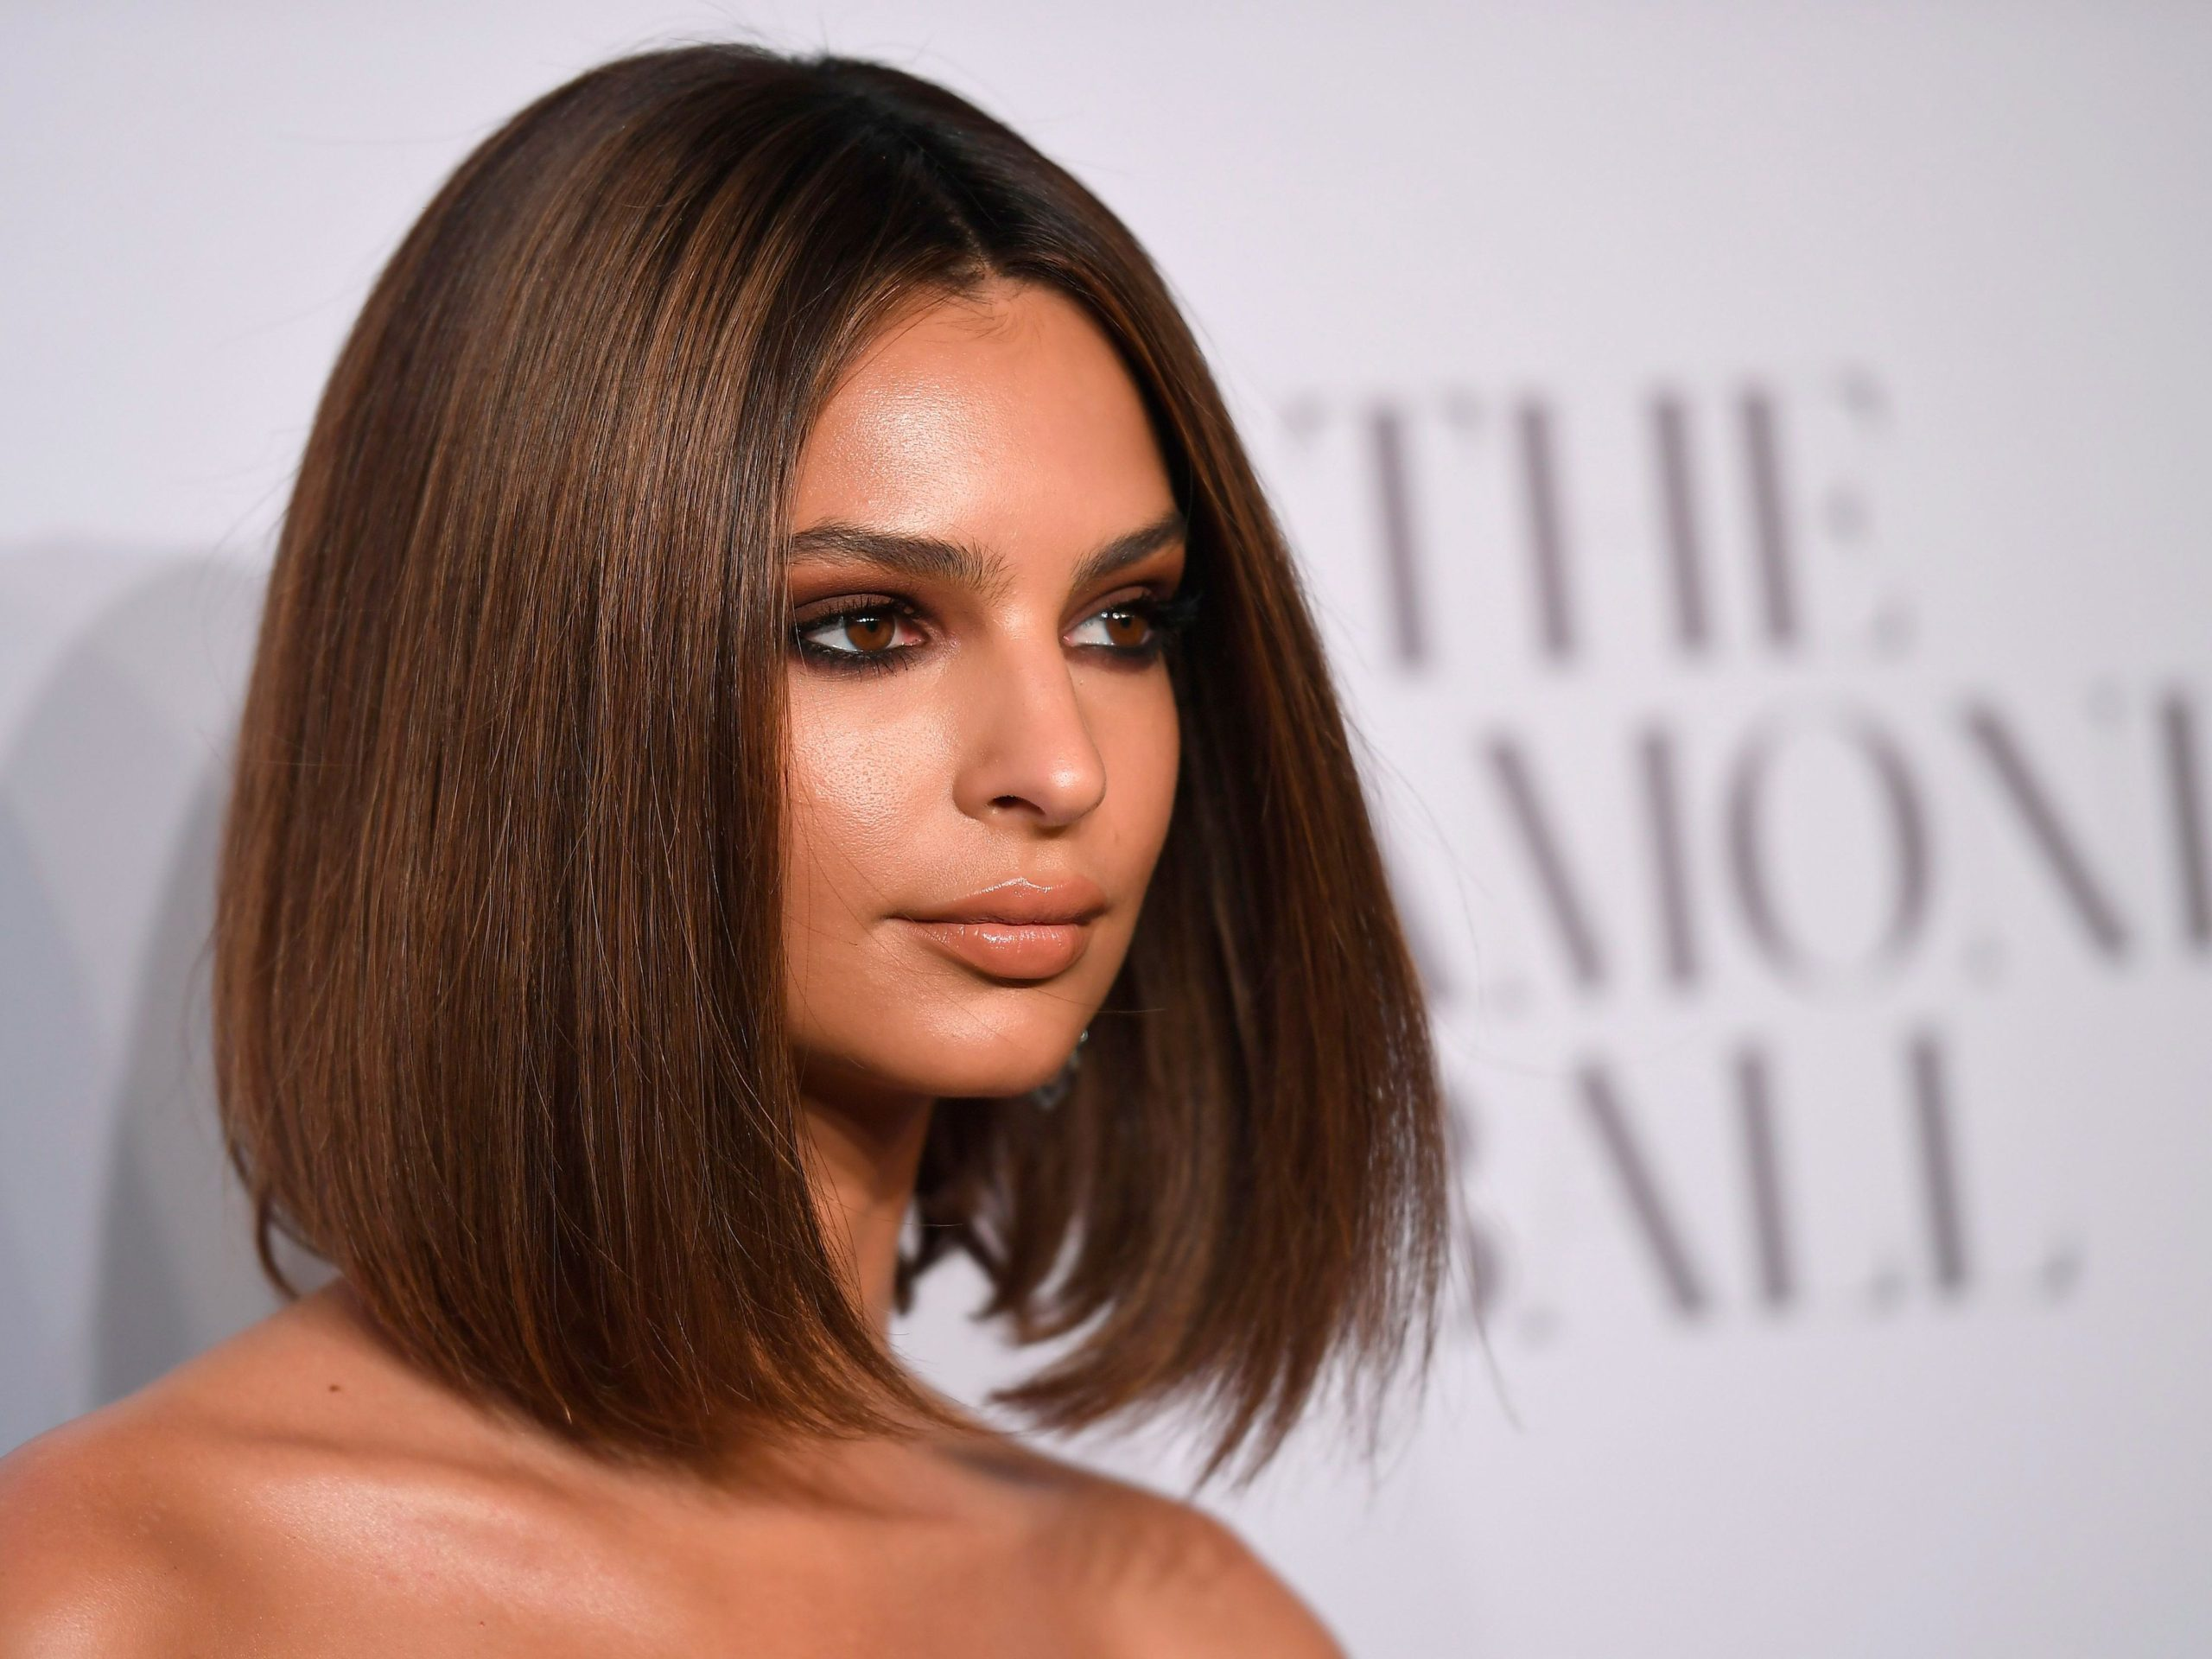 Emily Ratajkowski Awesome Hairs scaled - Emily Ratajkowski Net Worth, Pics, Wallpapers, Career and Biography